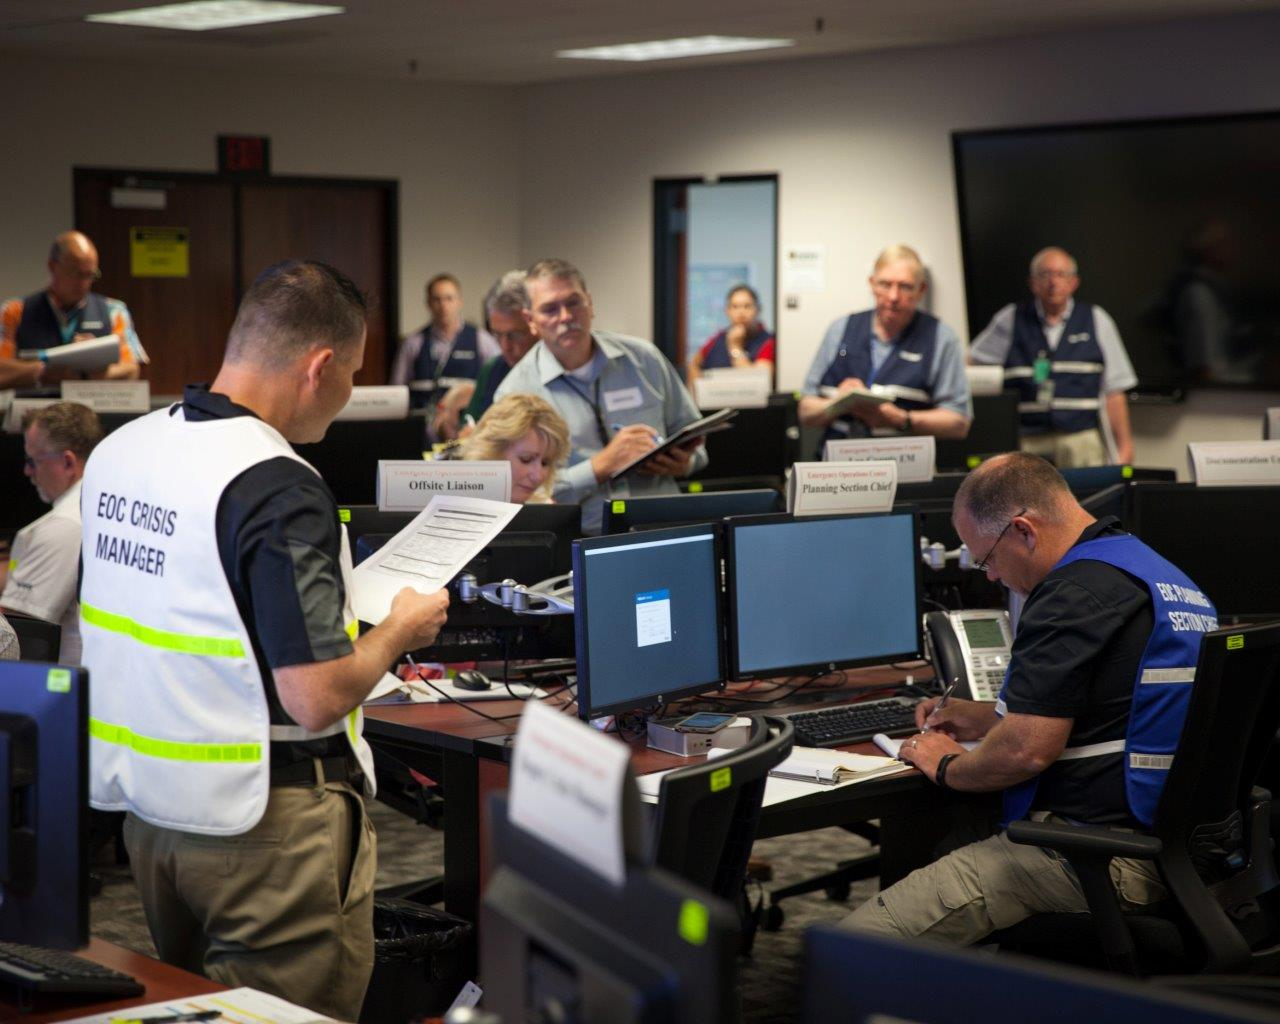 Numerous evaluators look on as Crisis Manager David Stuhan gives instructions to Emergency Operations Center personnel during a graded exercise as part of the Waste Isolation Pilot Plant's recovery from a 2014 radiation accident. Courtesy WIPP.   lvillagran@abqjournal.com Fri Dec 02 10:34:19 -0700 2016 1480700056 FILENAME: 336469.jpg